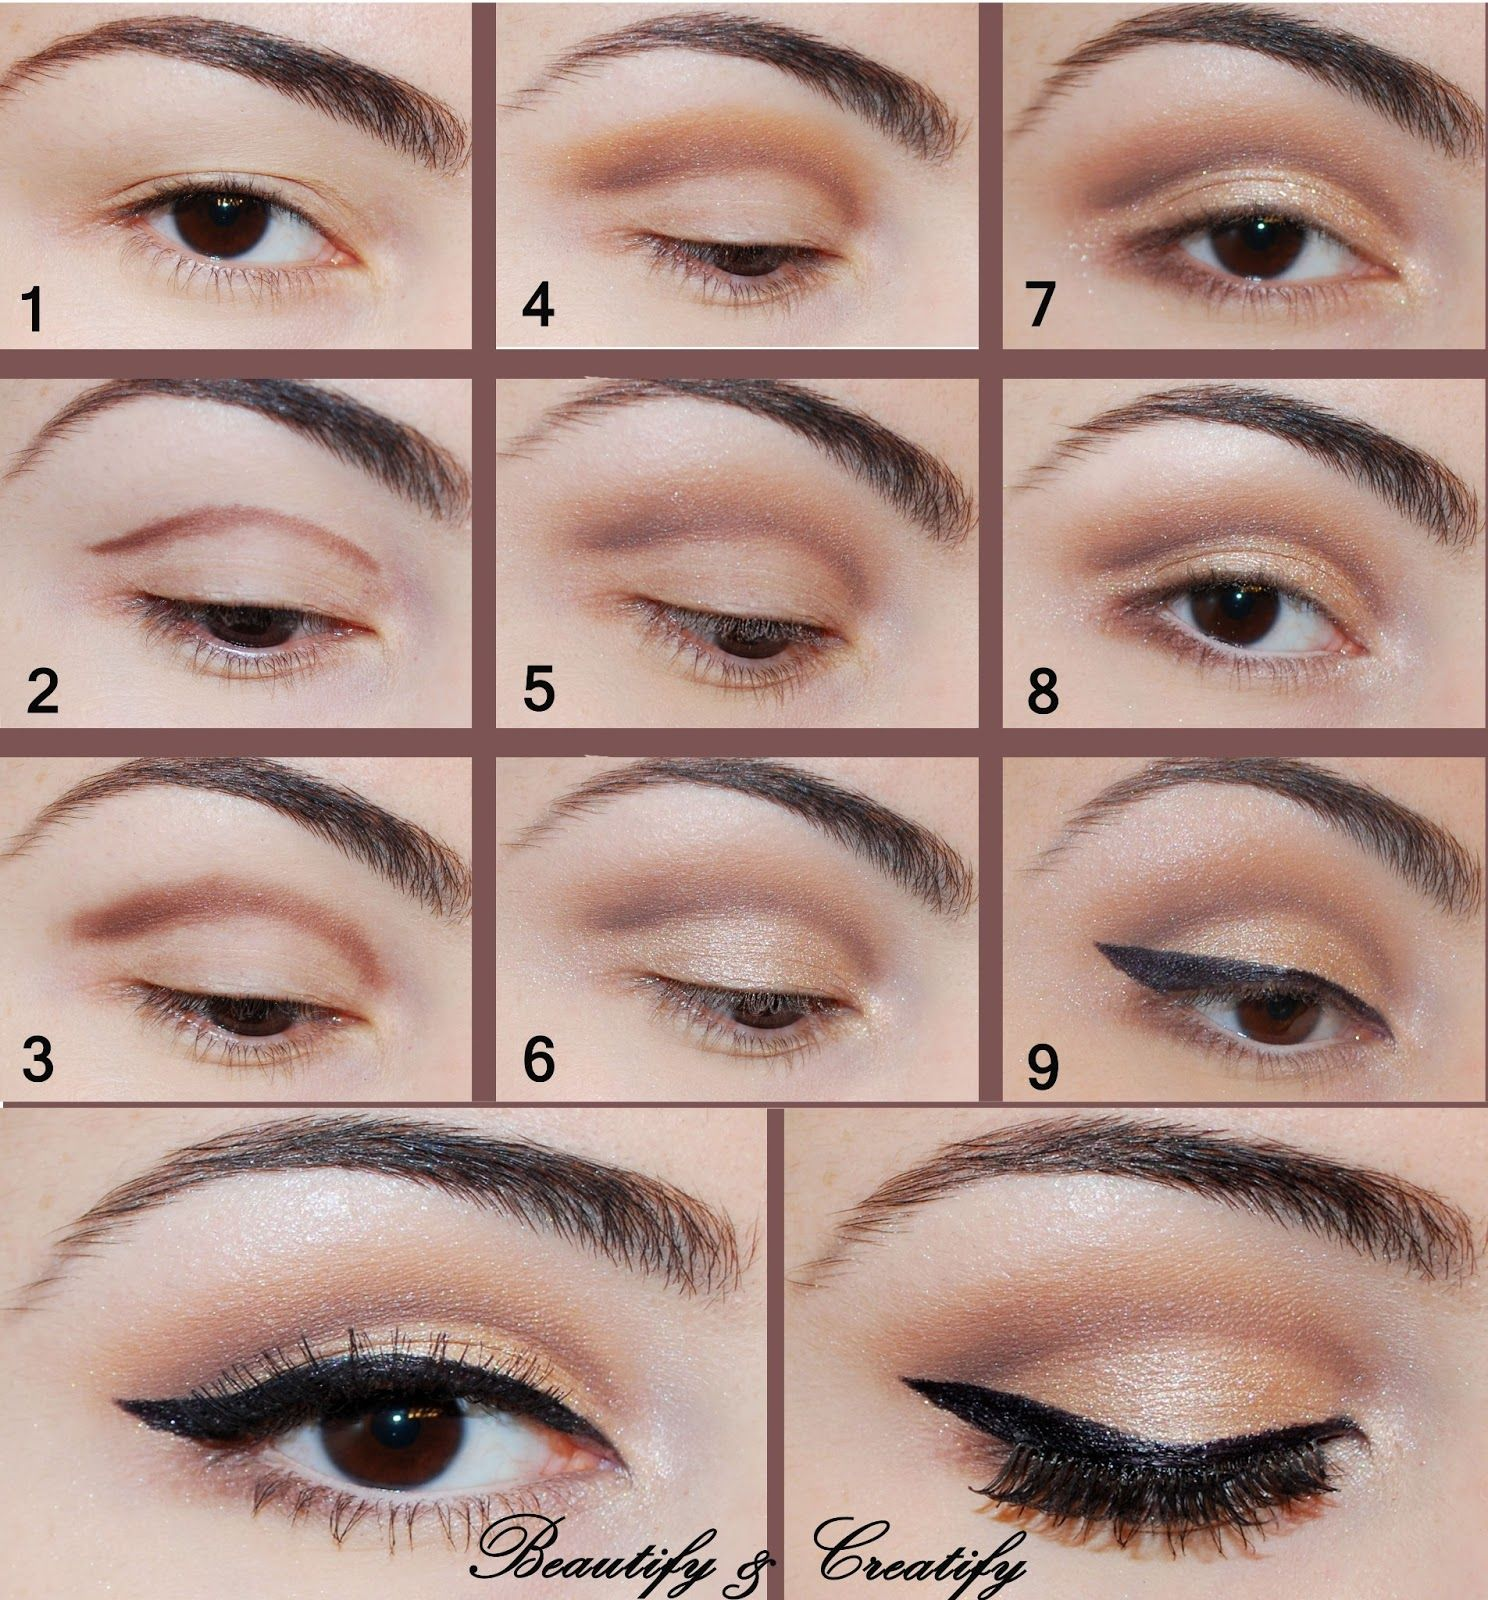 10 Fast Easy Step By Step Makeup Tutorials For Teens With